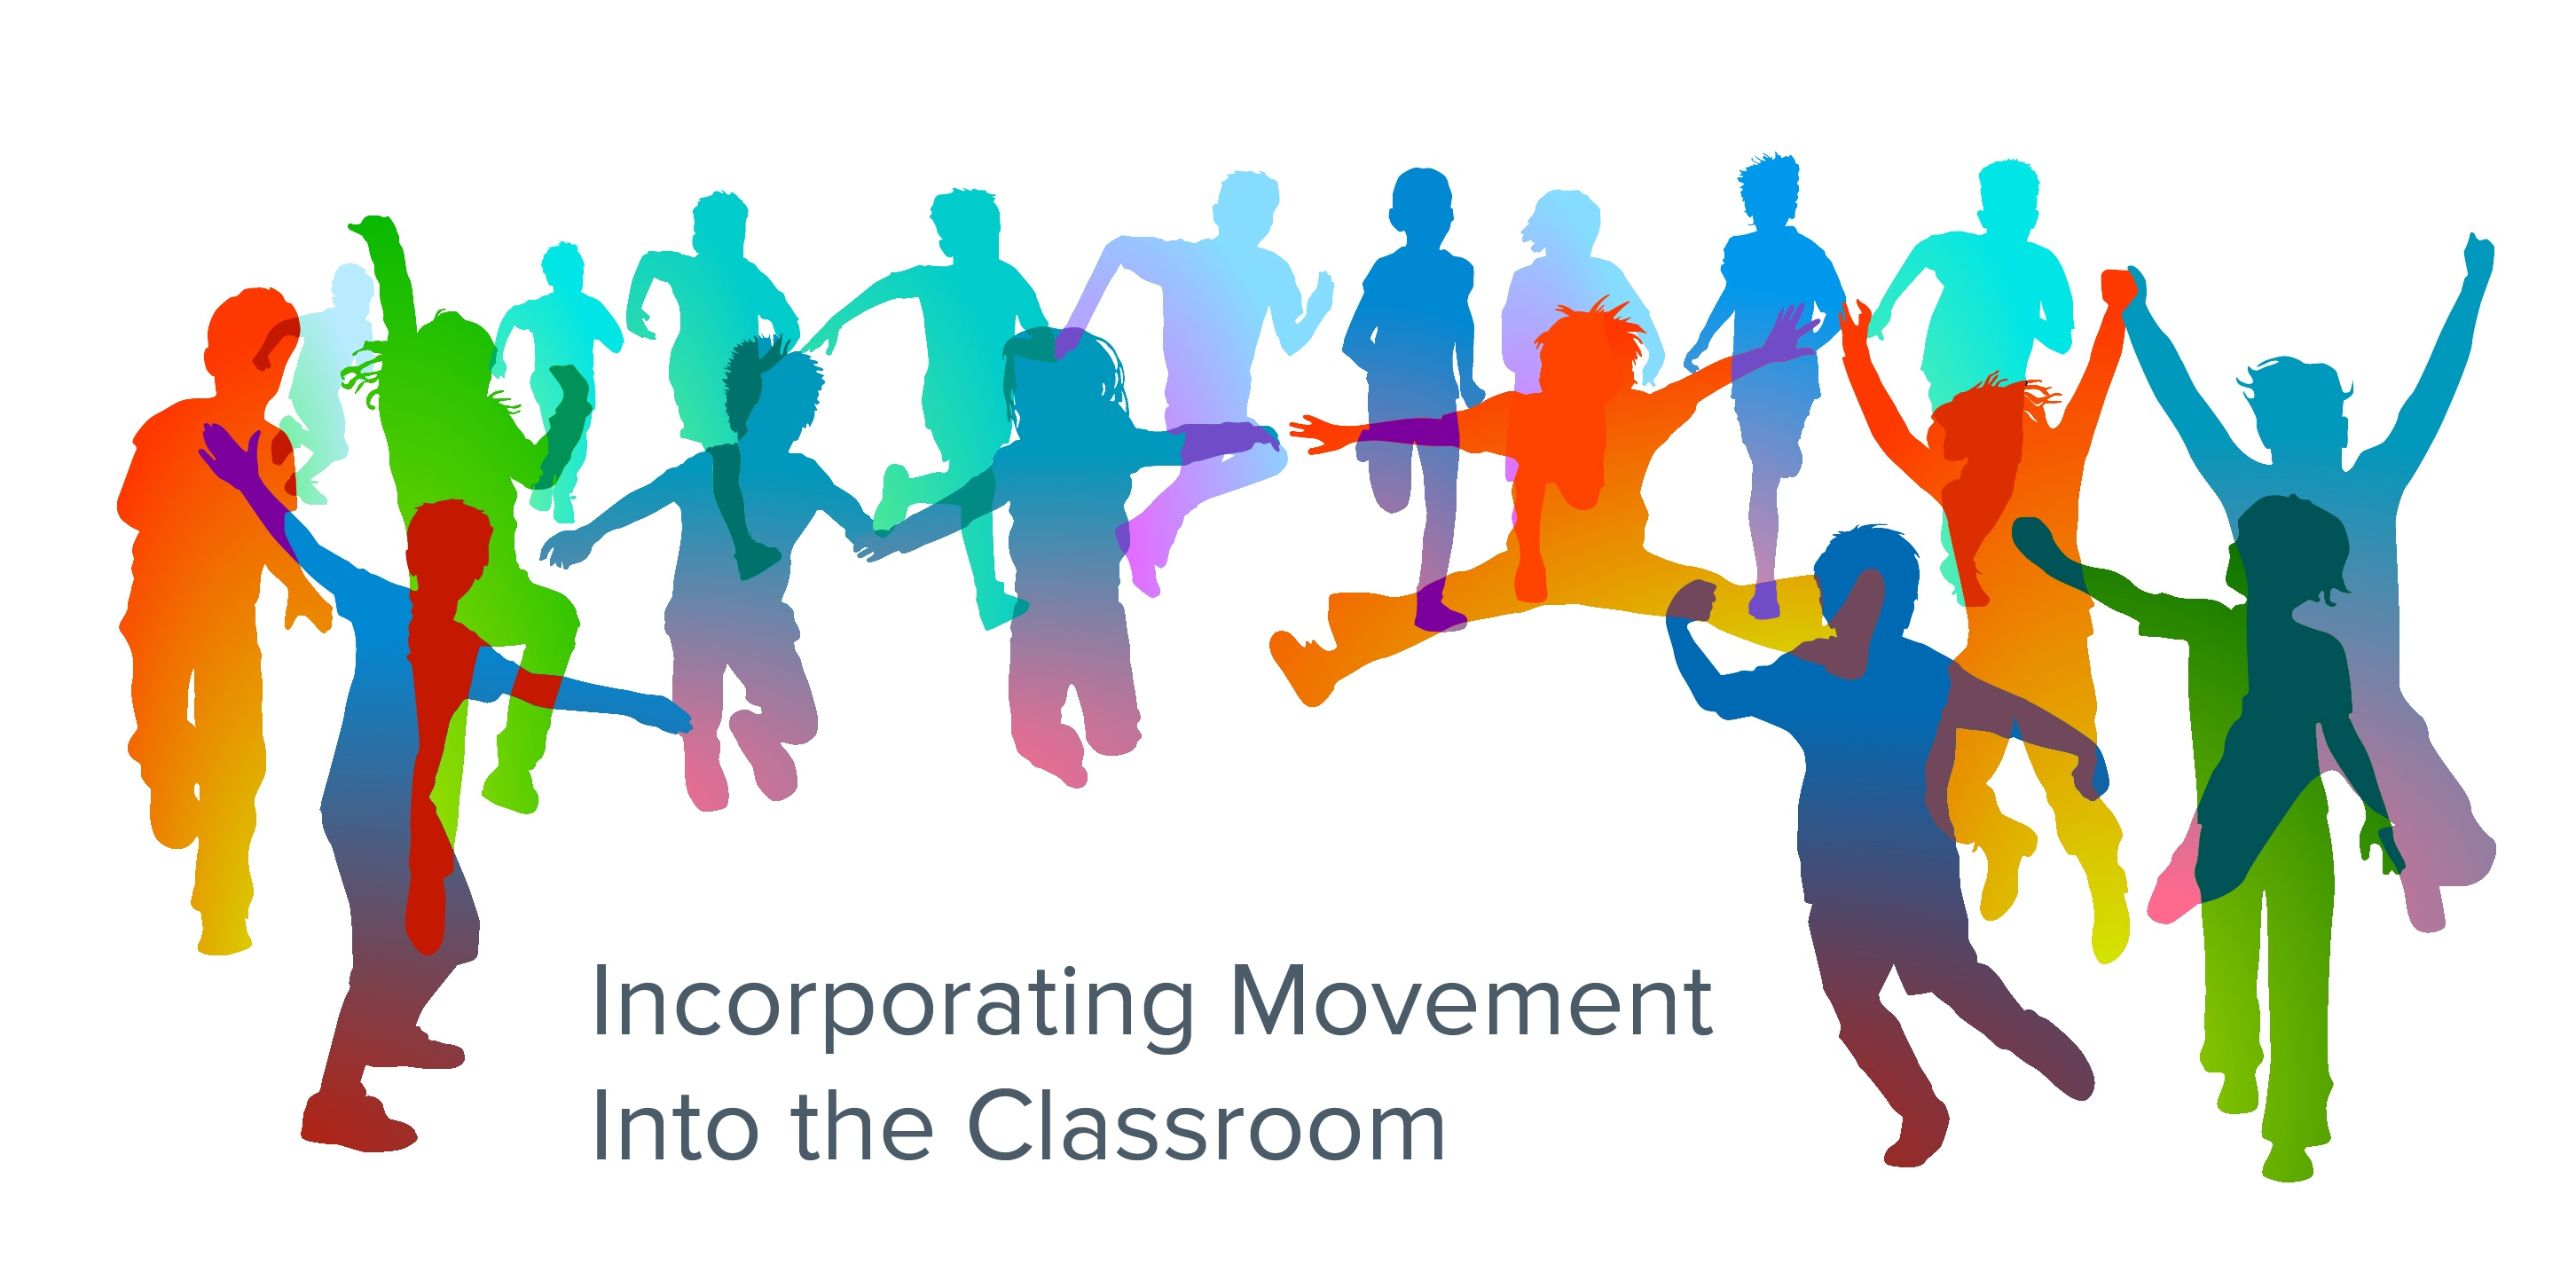 IncorporatingMovementintheClassroom-01.jpg